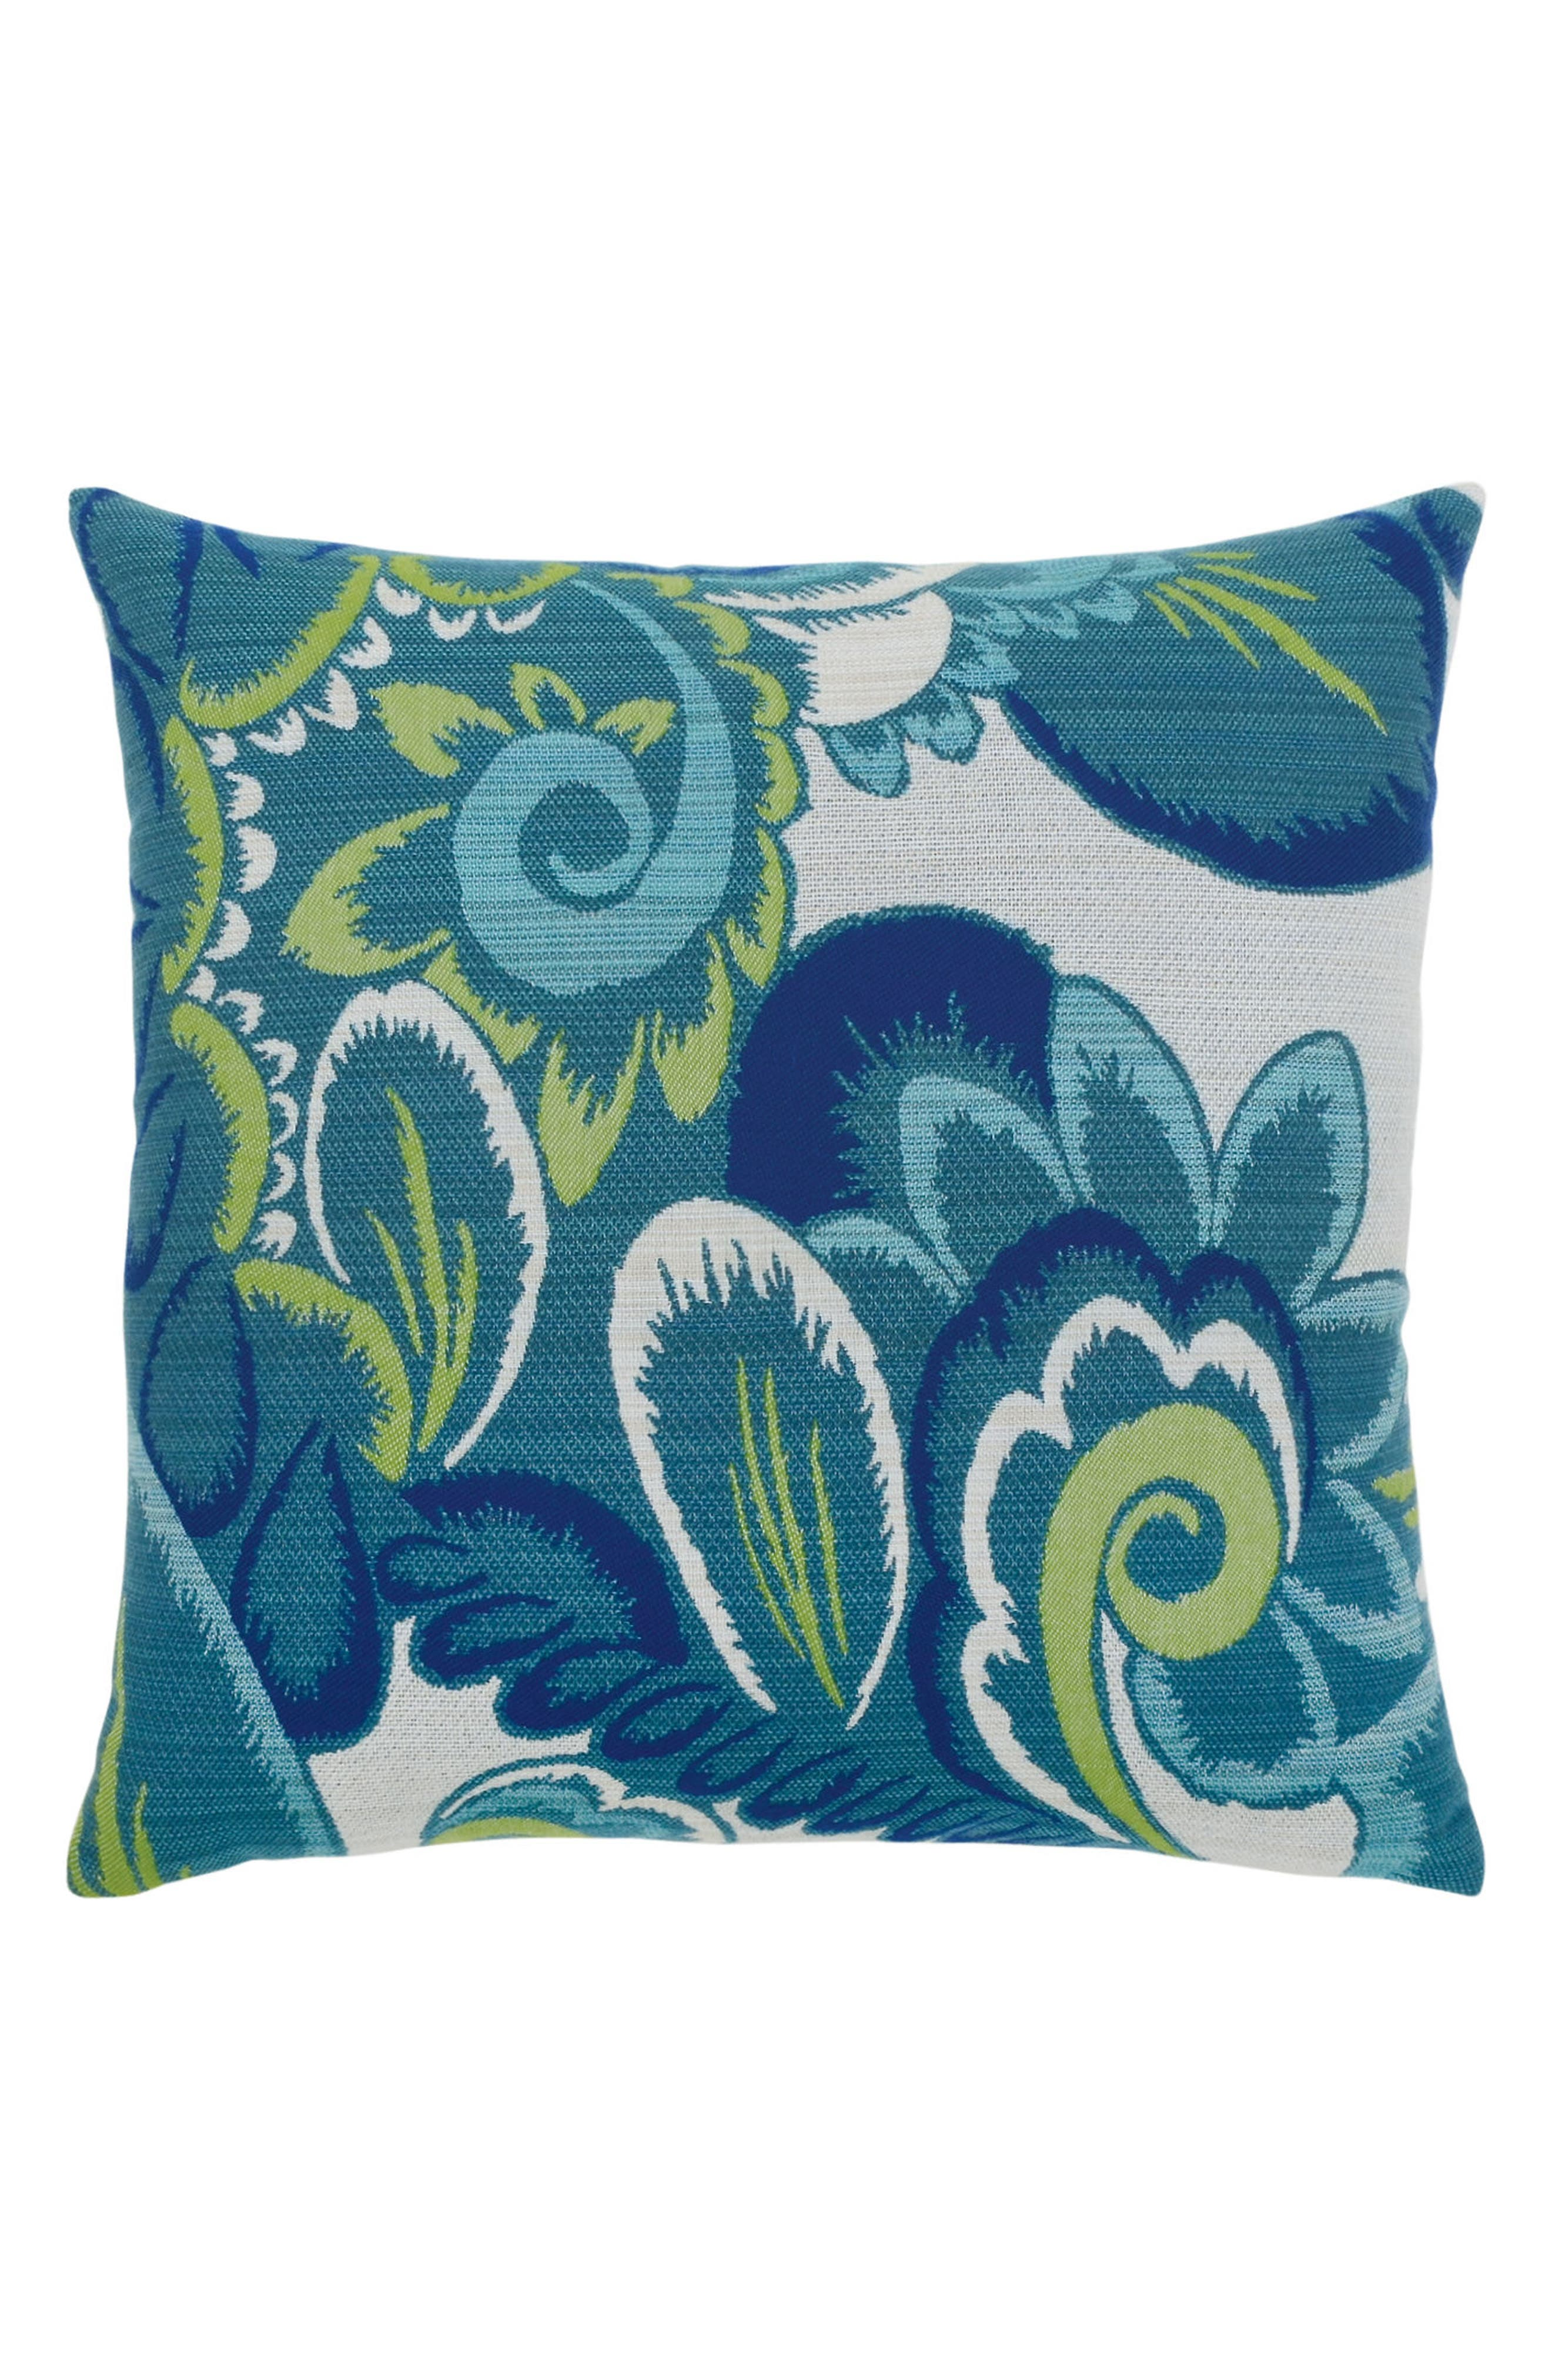 Floral Wave Indoor/Outdoor Accent Pillow,                             Main thumbnail 1, color,                             400